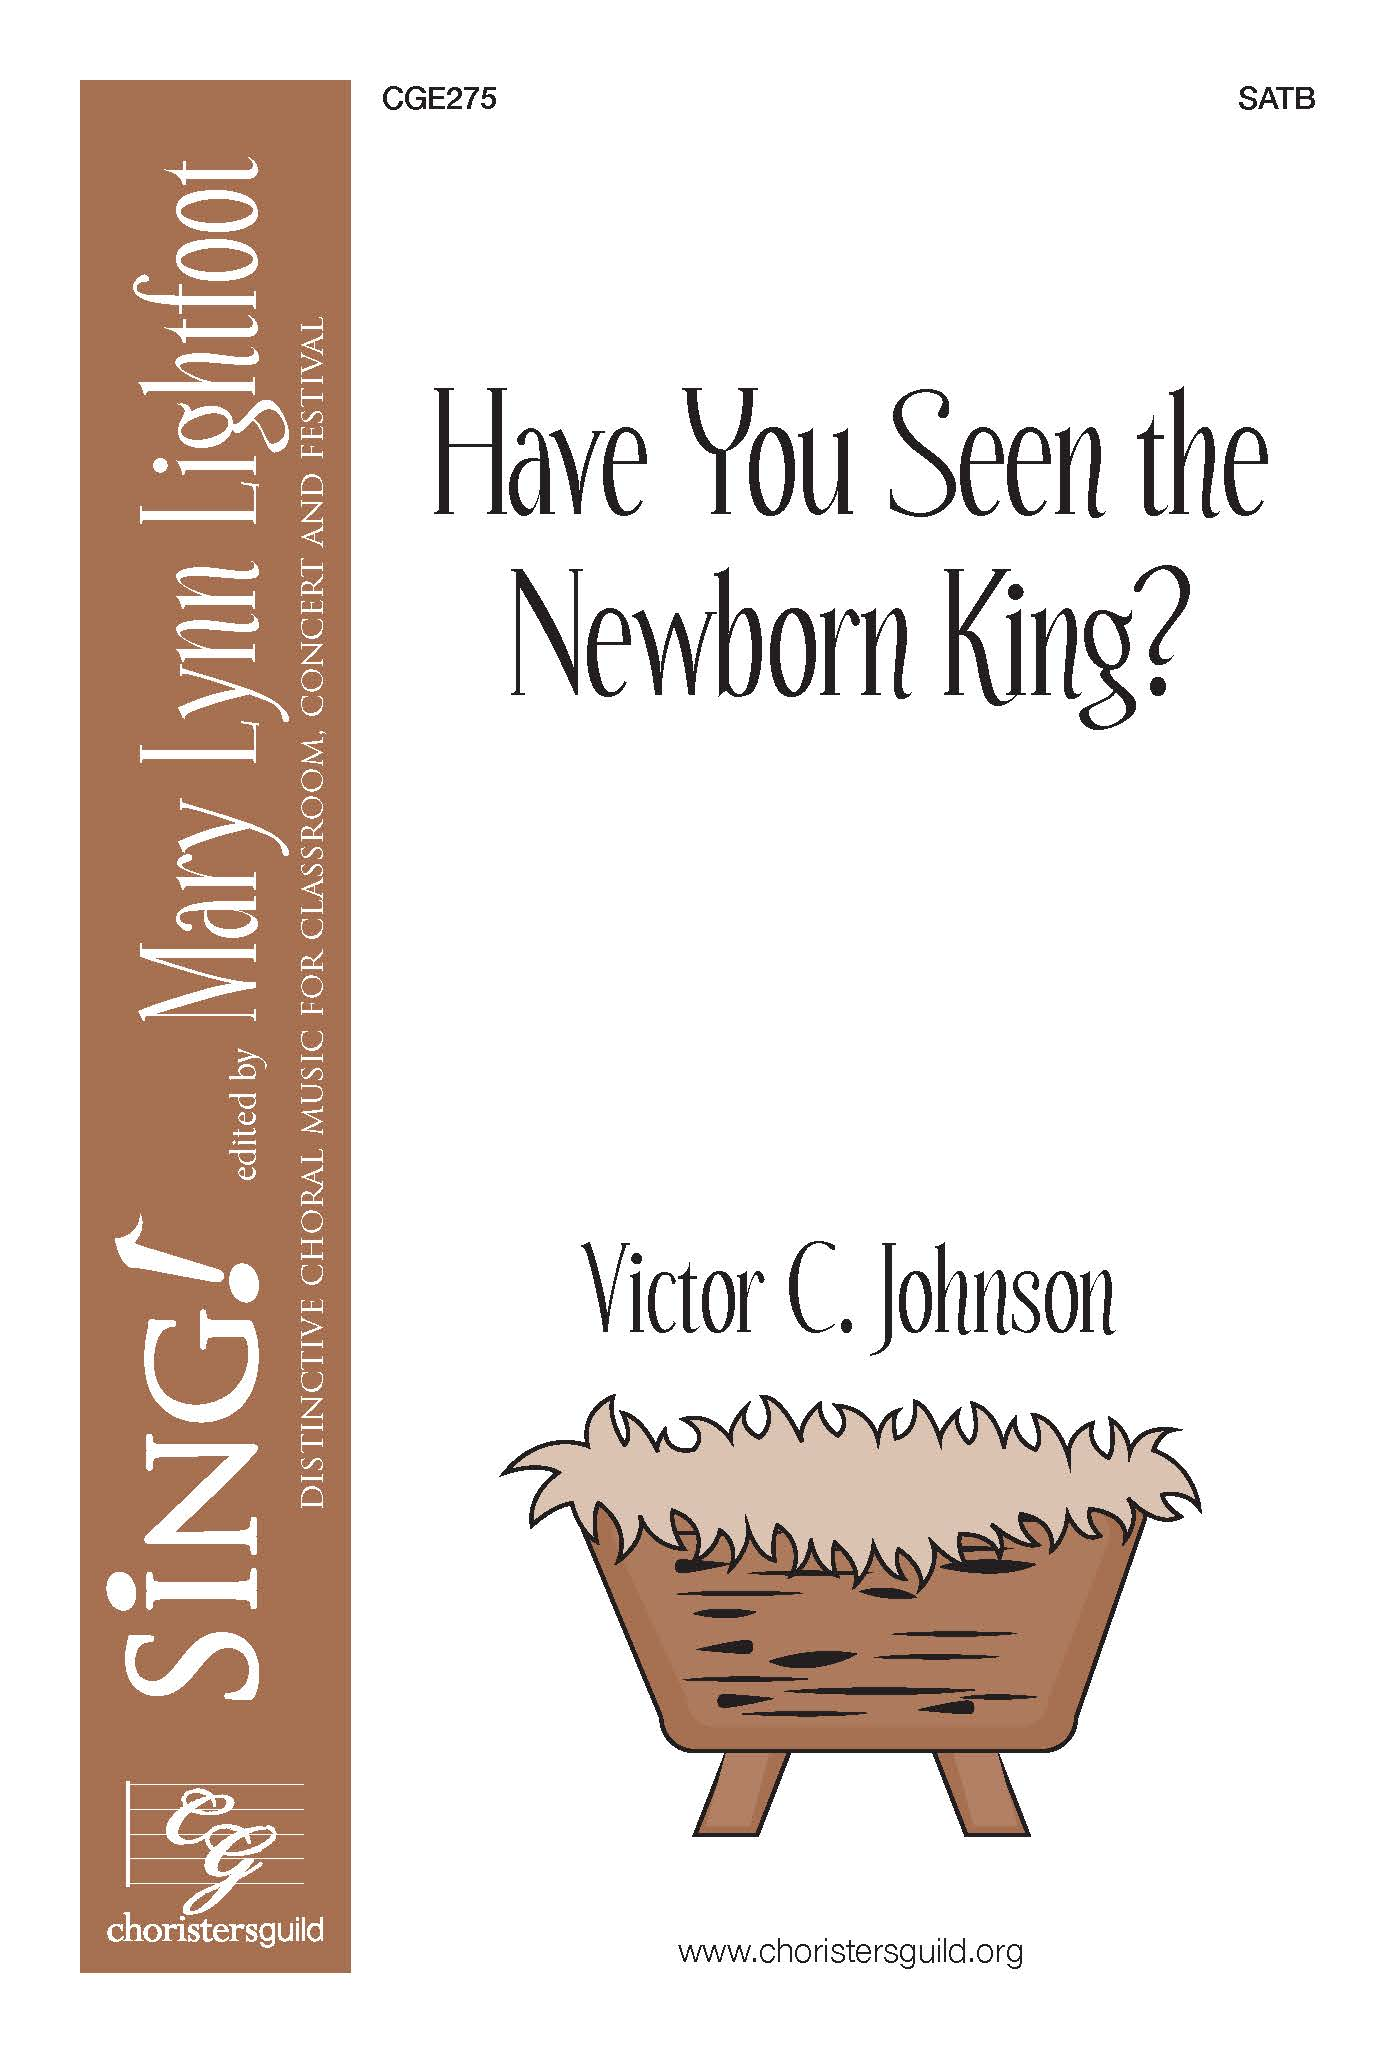 Have You Seen the Newborn King?